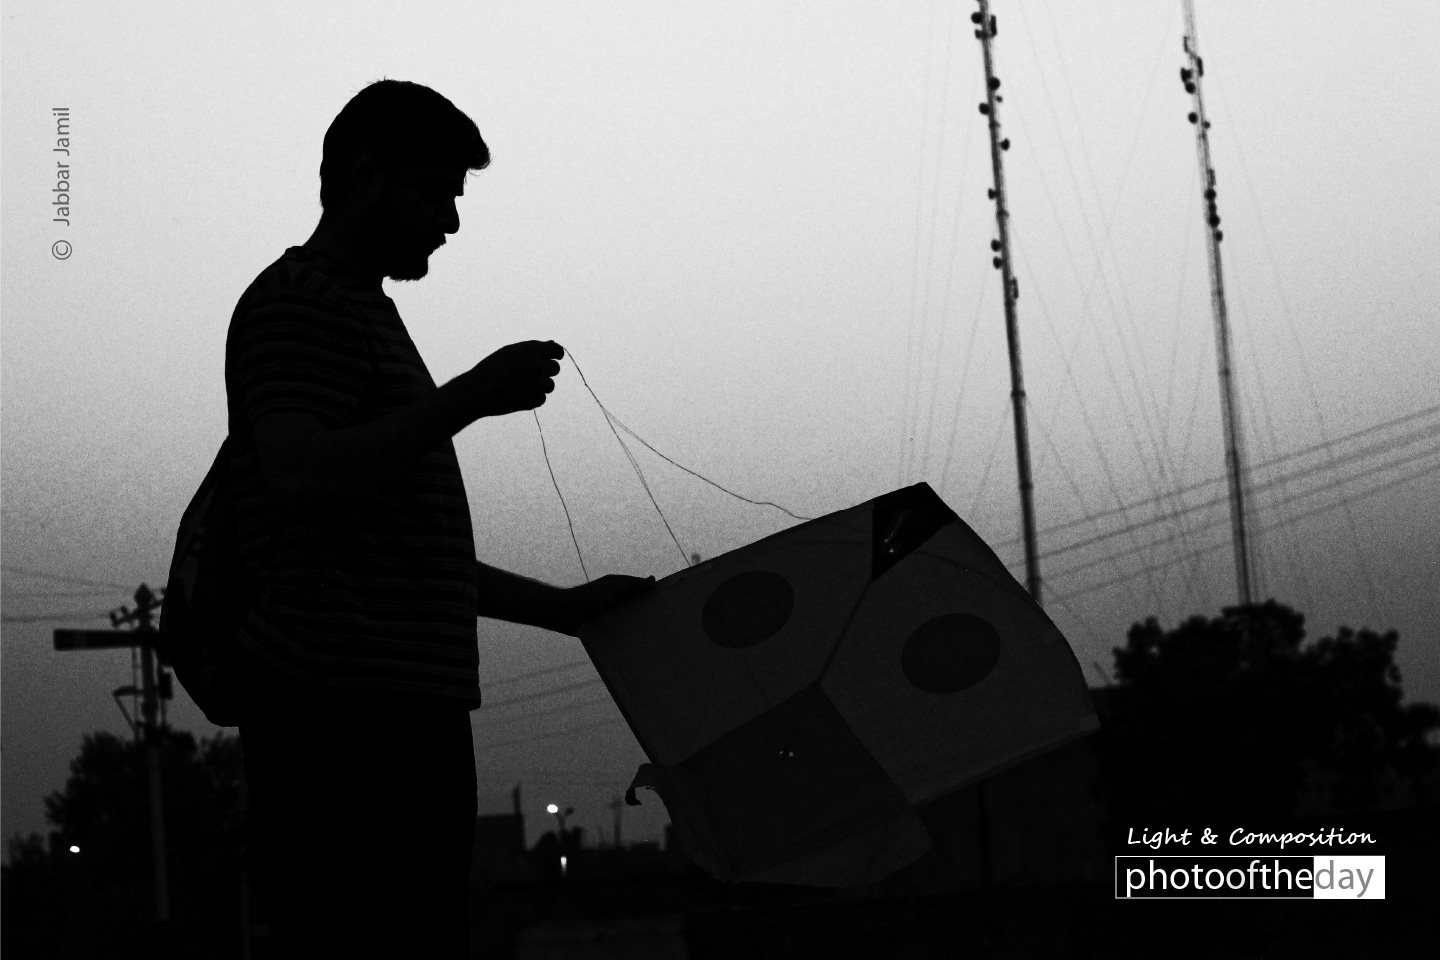 Posing with the Kite, by Jabbar Jamil